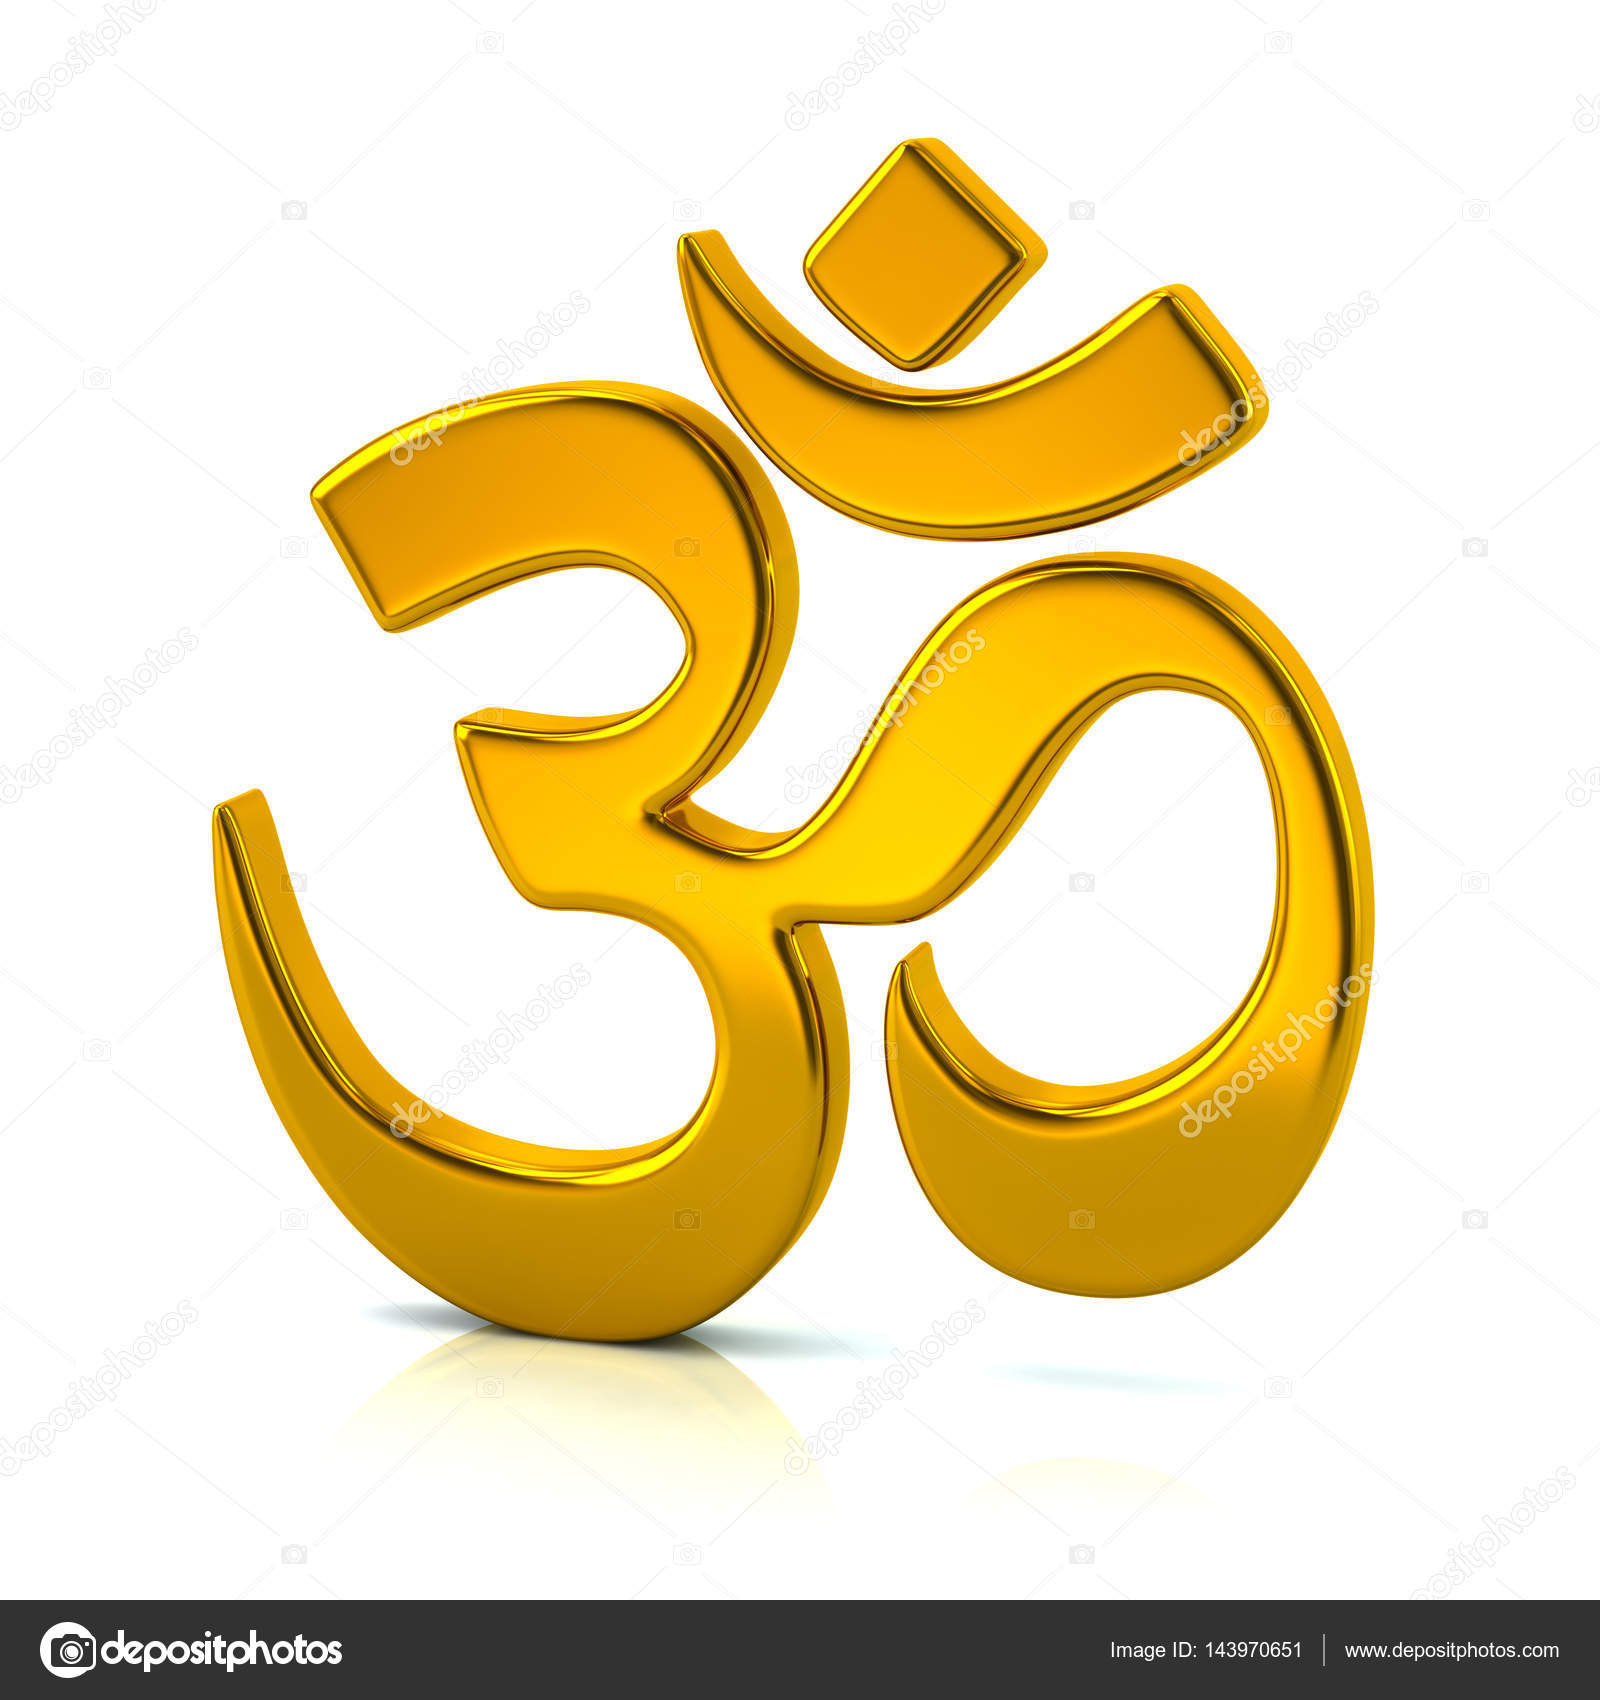 Golden Aum Or Om Symbol Of Hinduism Stock Photo Valdum 143970651